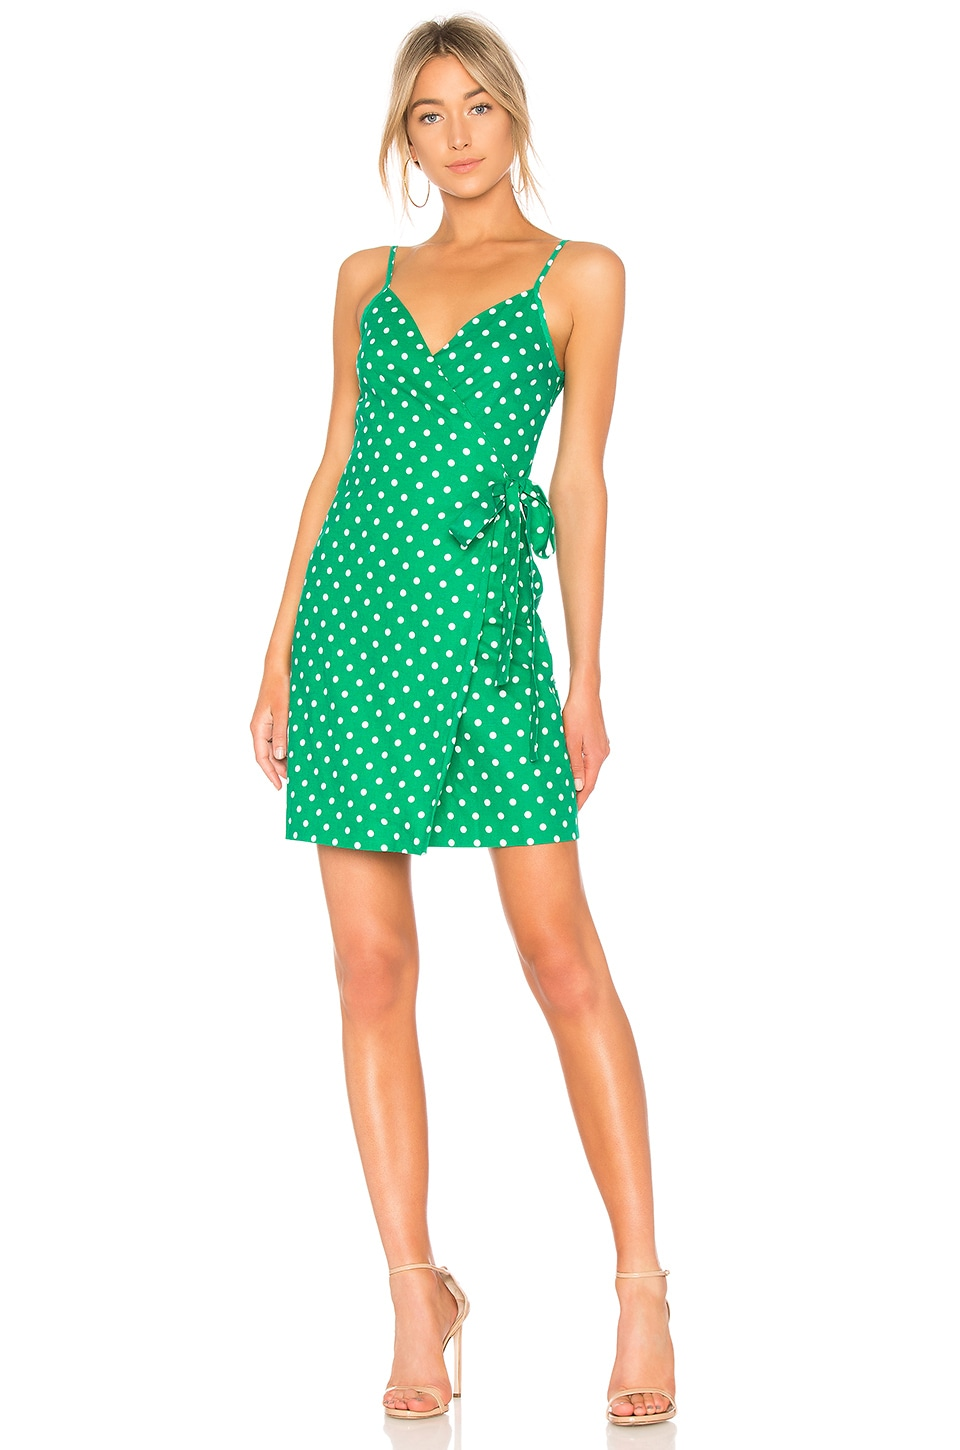 L'Academie The Martin Dress in Green Dot | REVOLVE